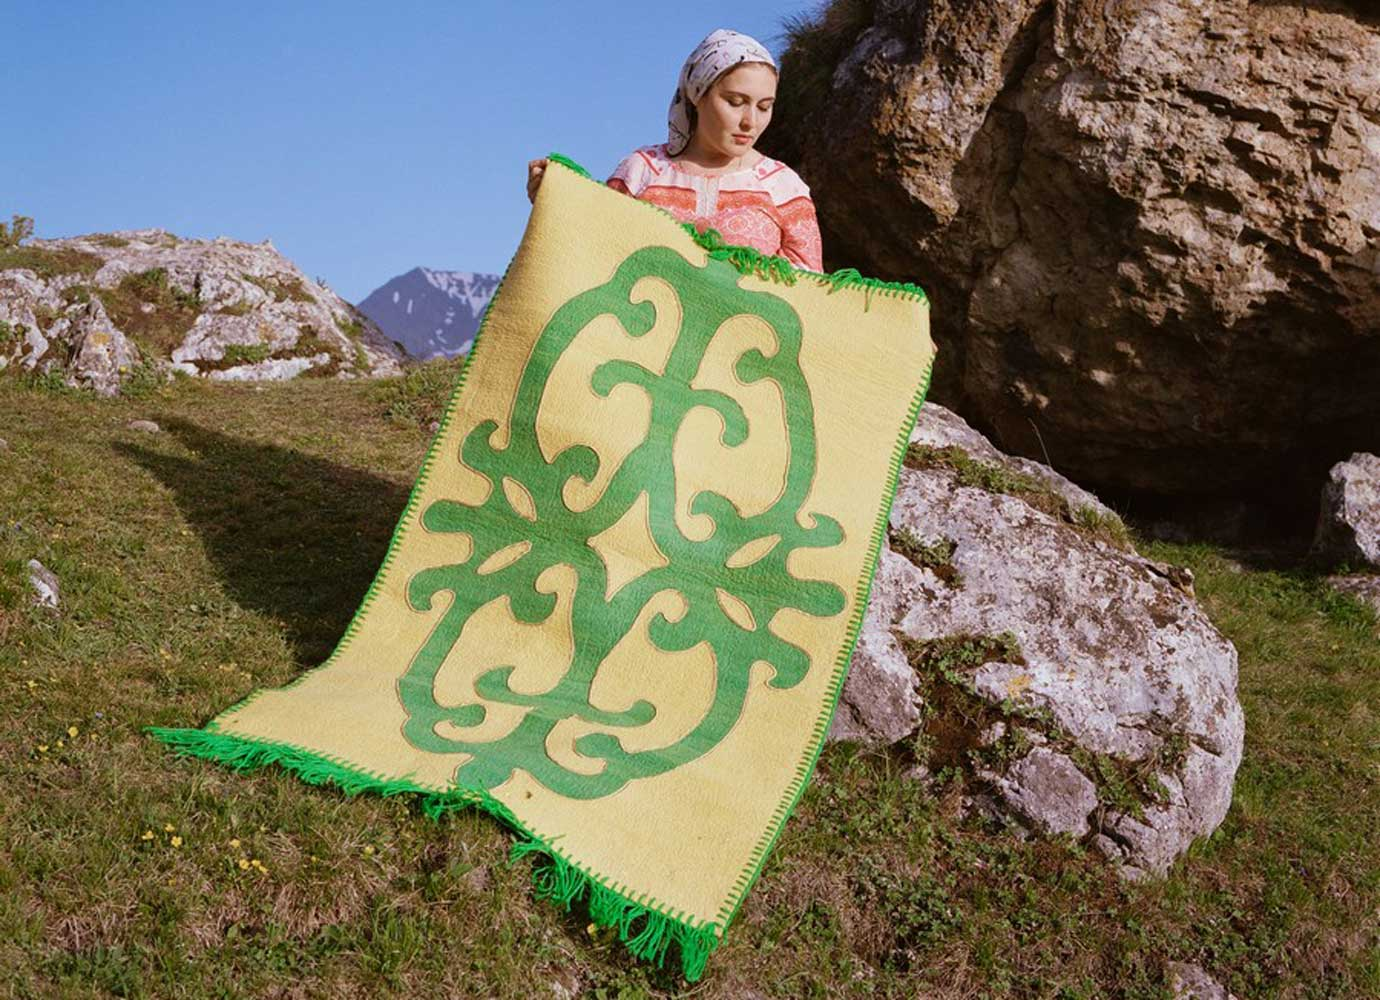 In Ingushetia, young women are reclaiming the threads of an ancient artform